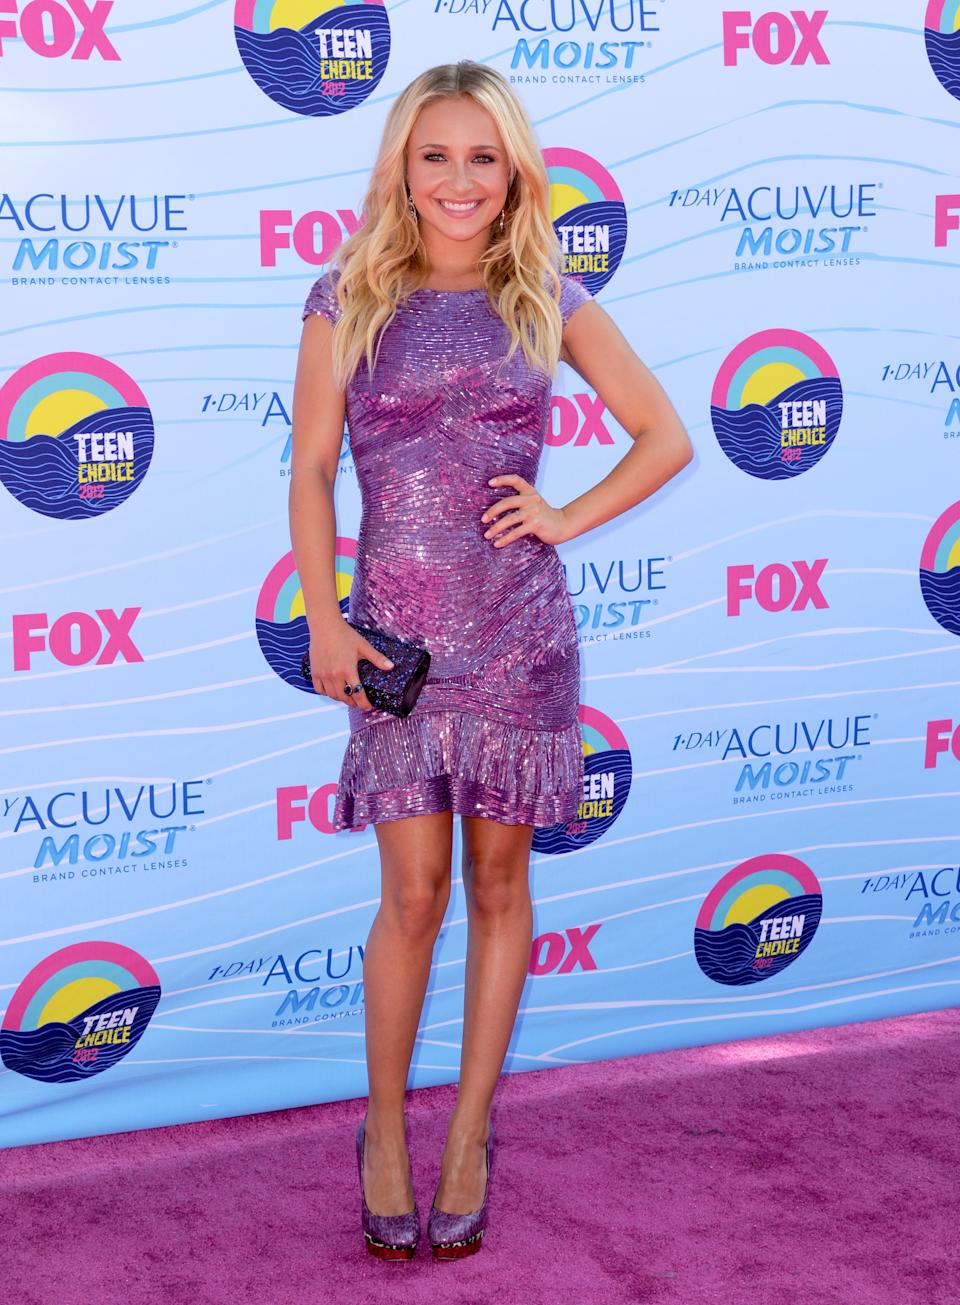 Hayden Panettiere arrives at the Teen Choice Awards on Sunday, July 22, 2012, in Universal City, Calif. (Photo by Jordan Strauss/Invision/AP)